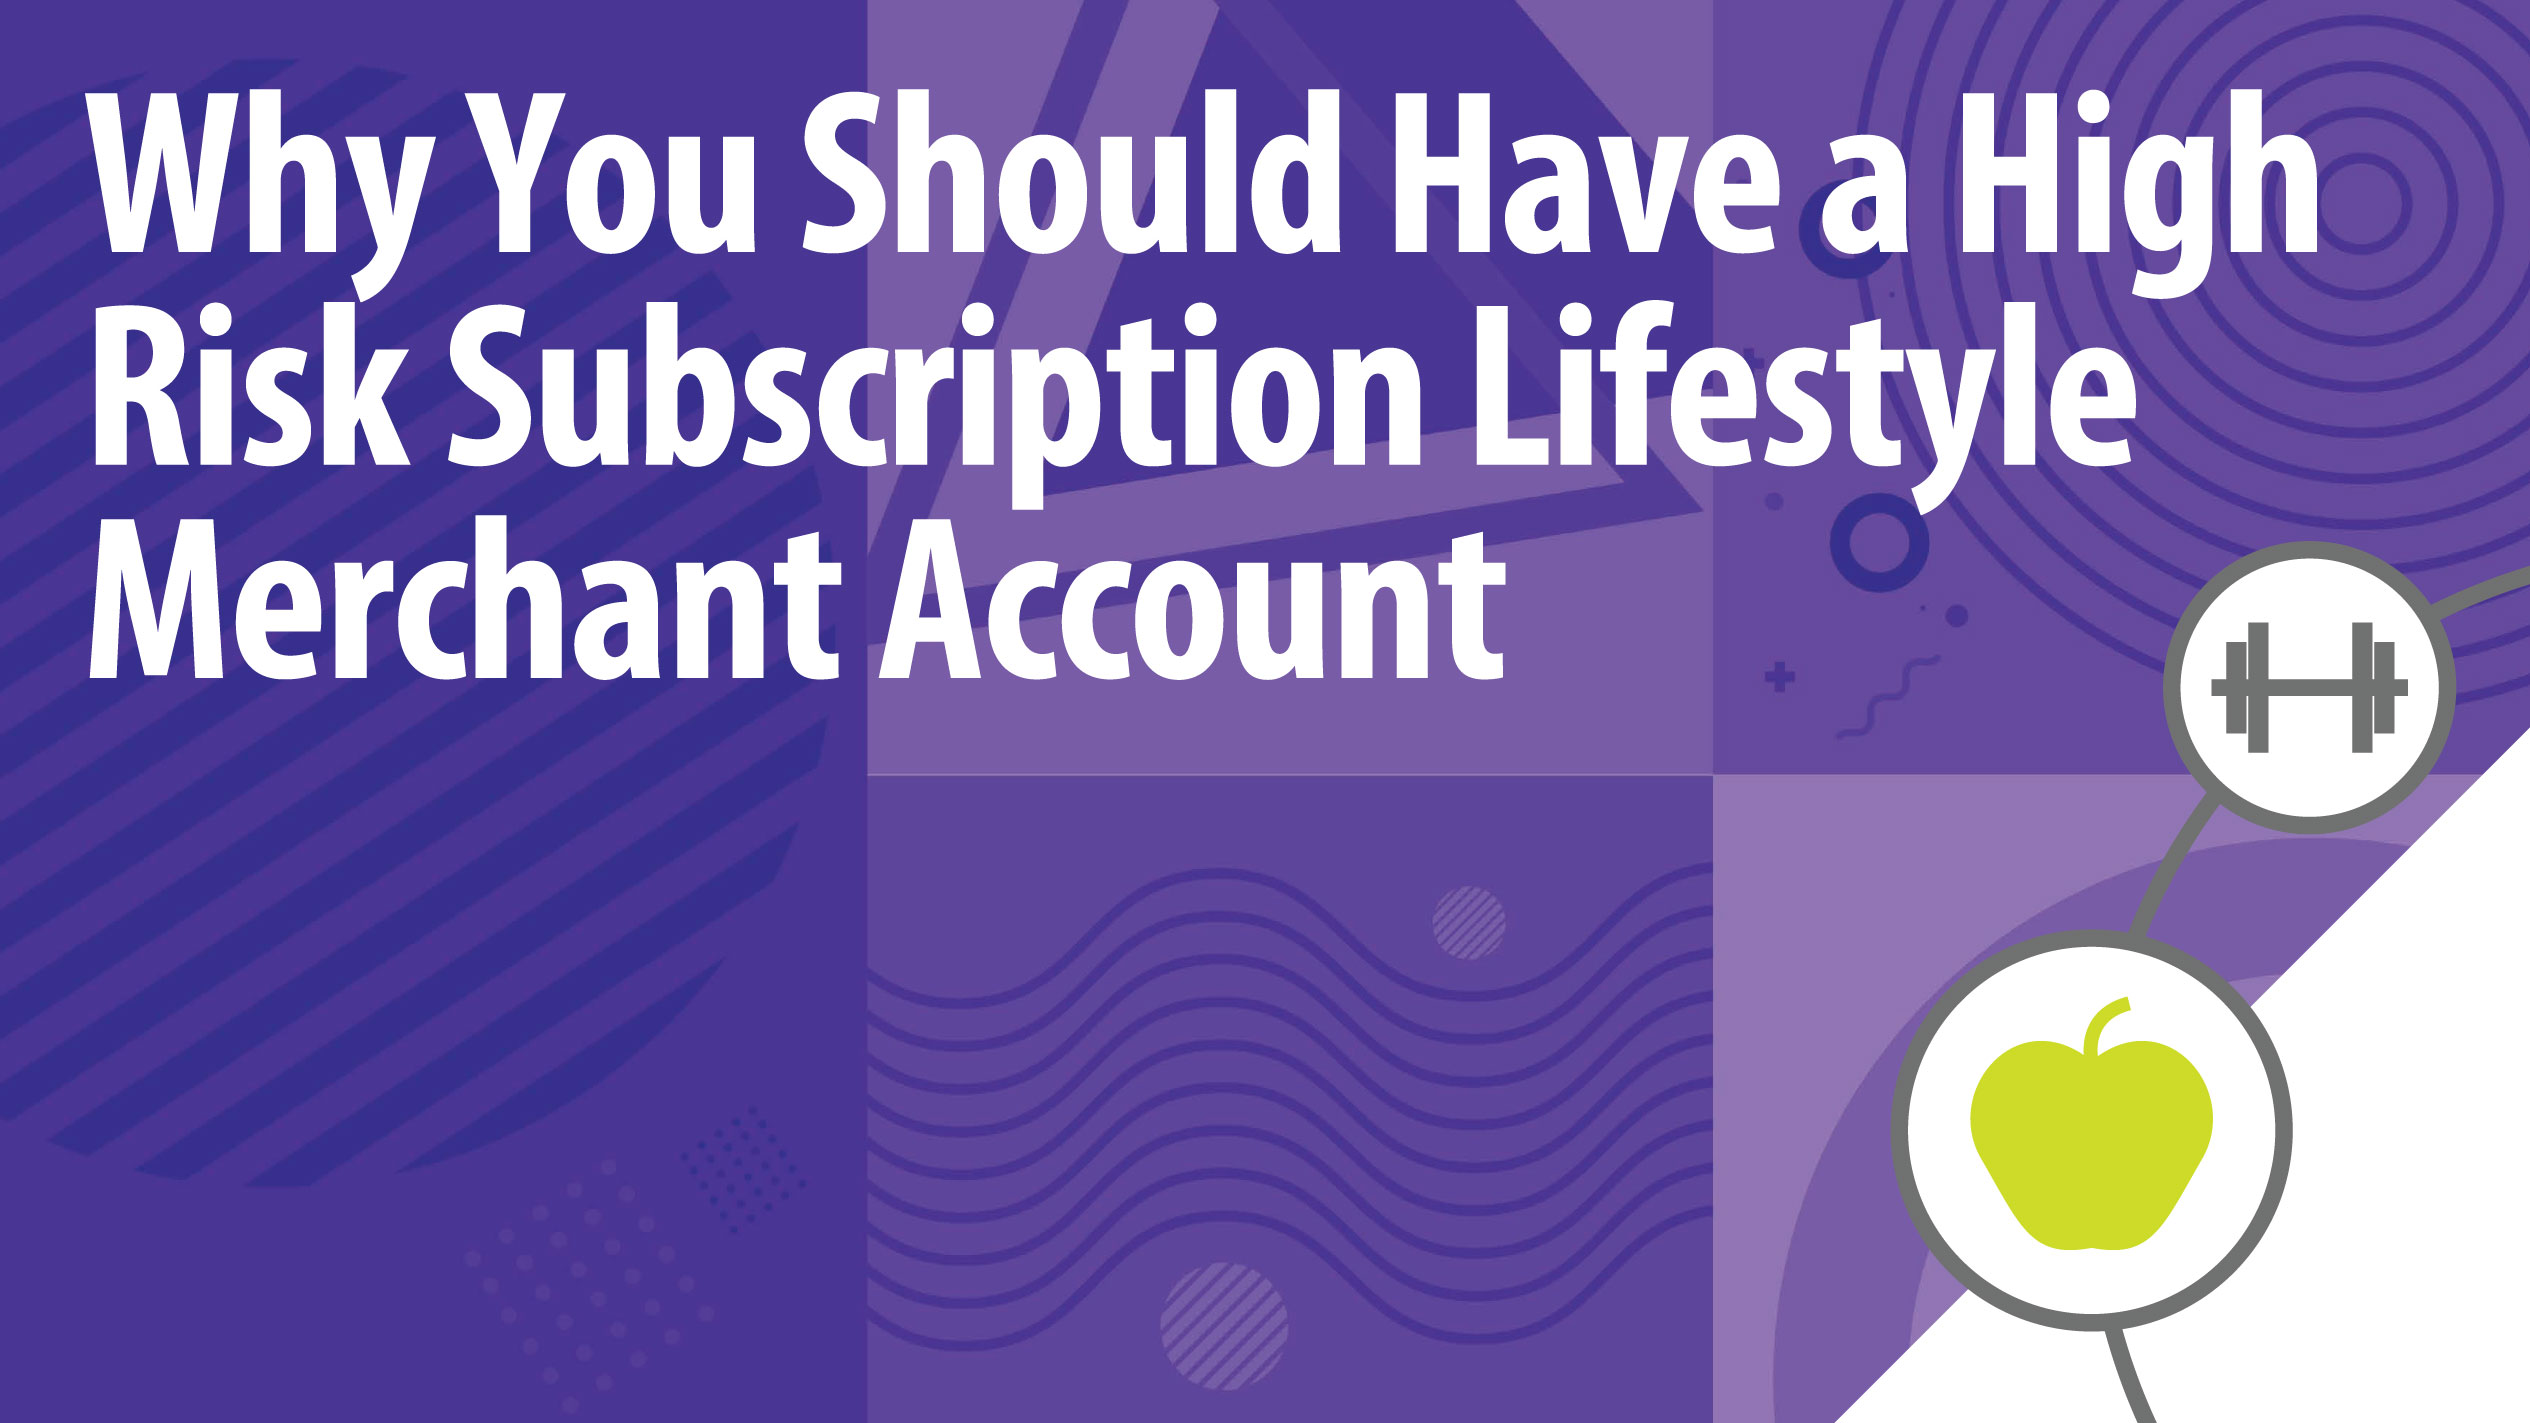 Why You Should Have a High Risk Subscription Lifestyle Merchant Account